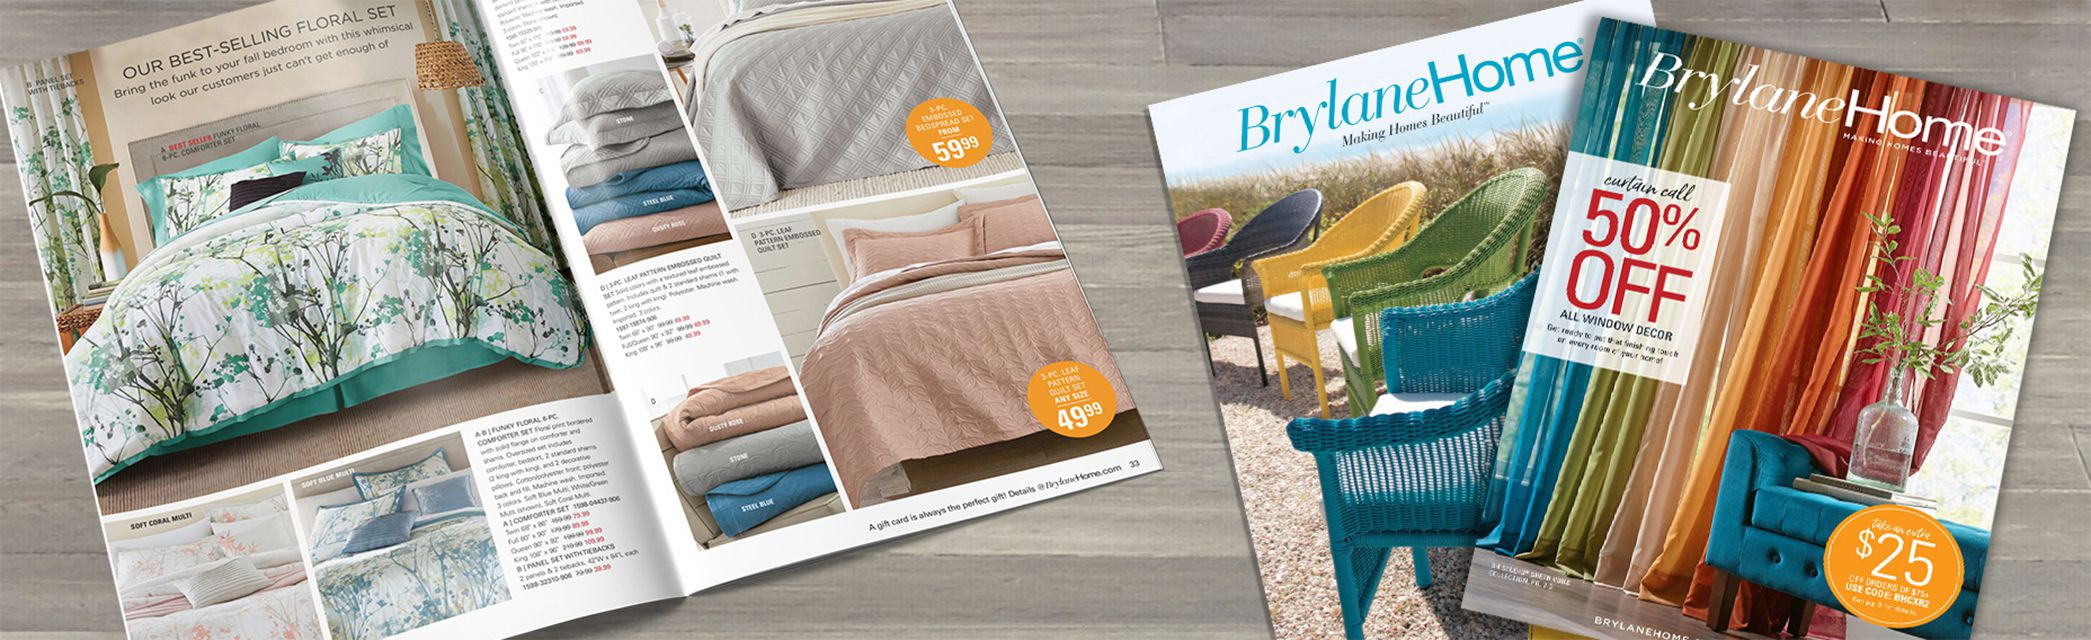 home decor catalogs list how to request a free brylane home catalog  how to request a free brylane home catalog